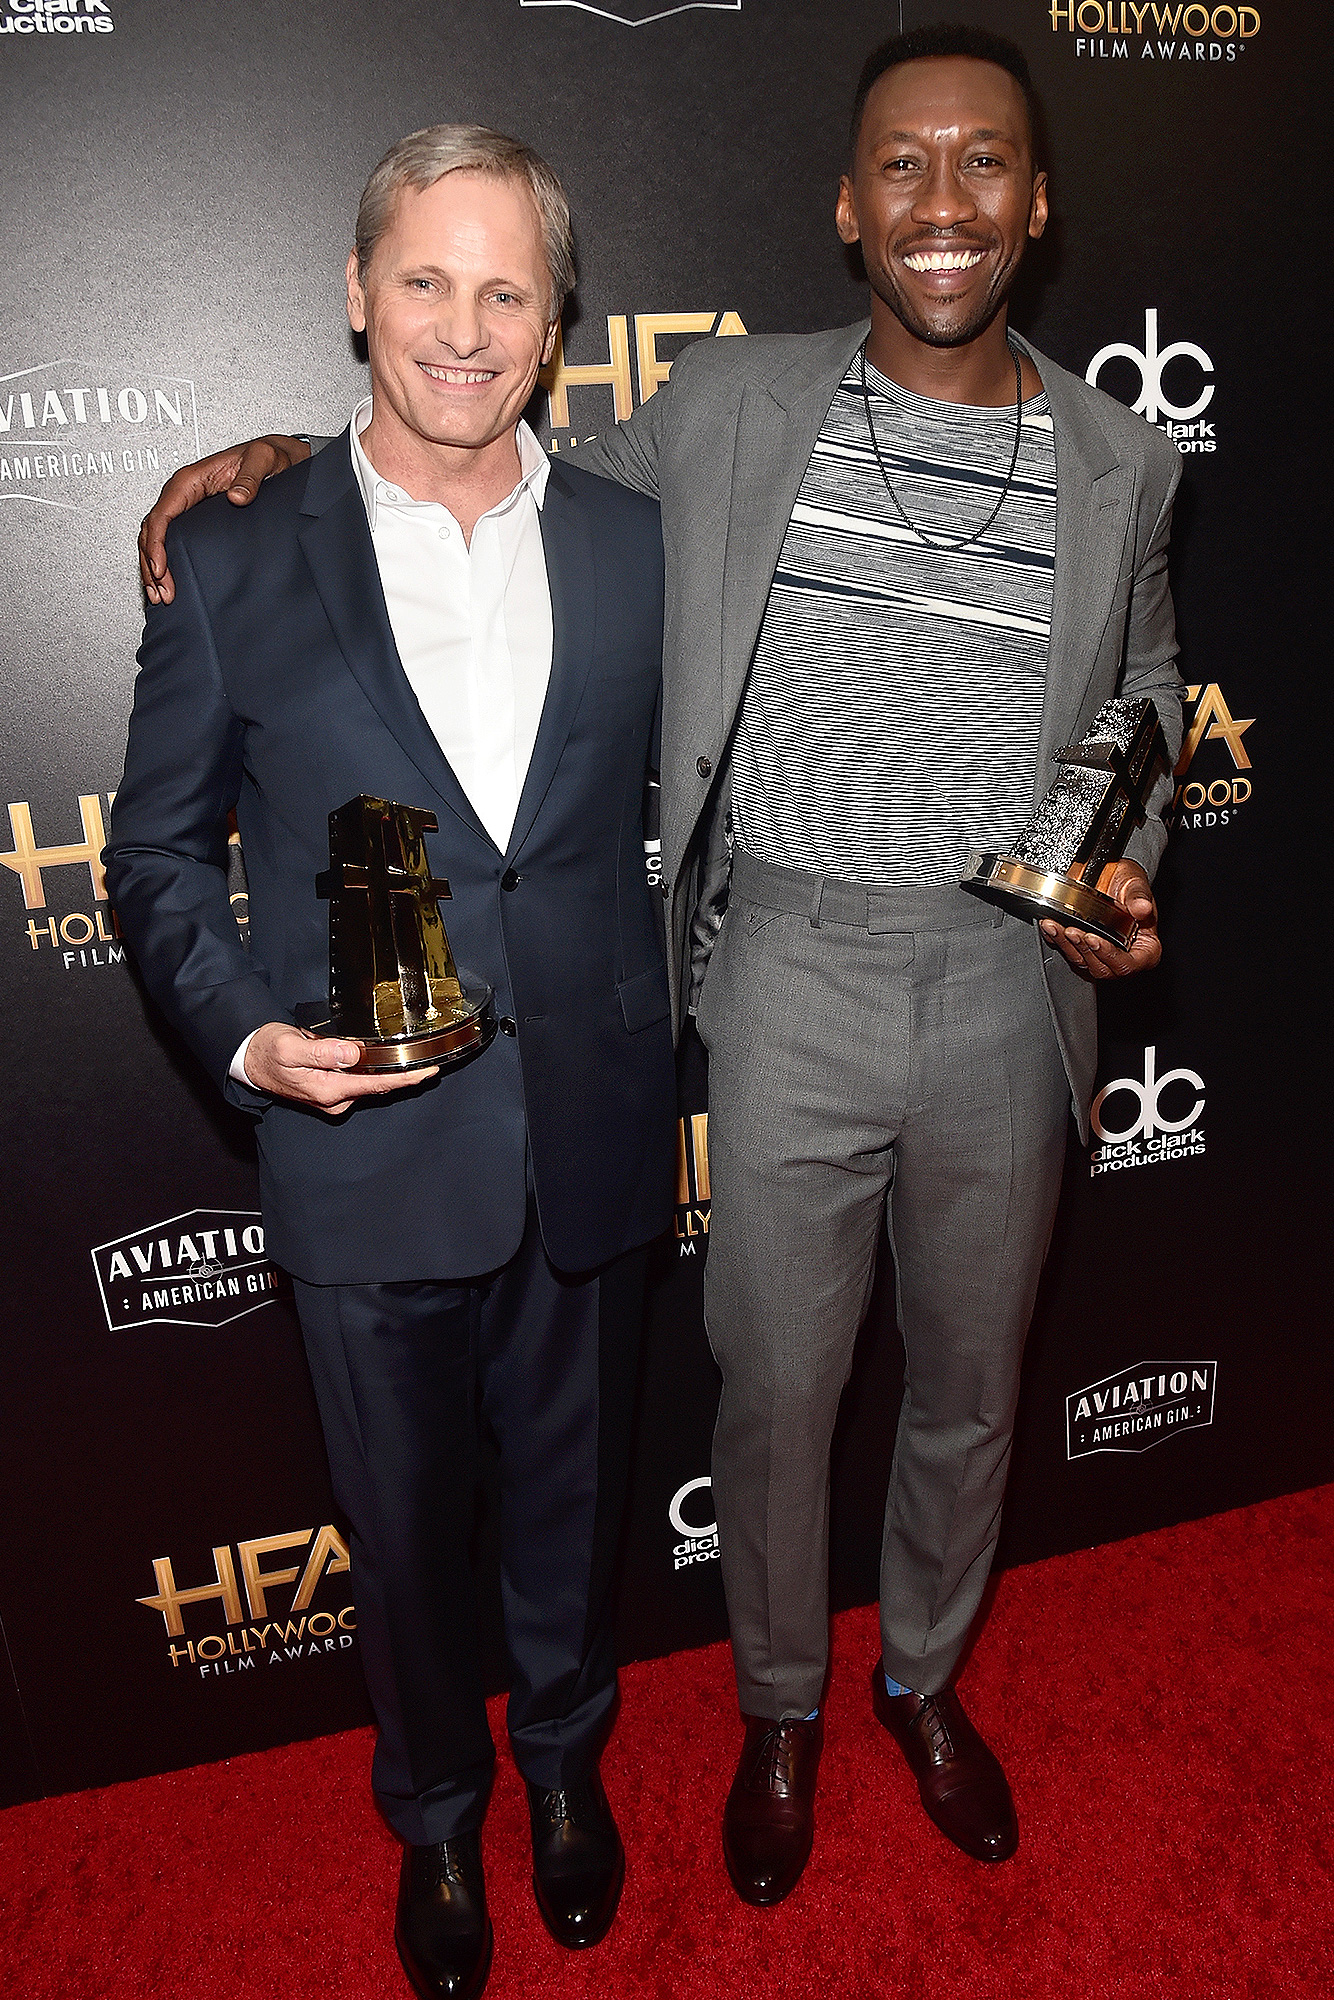 Mahershala Ali, Viggo Mortensen, Extraordinary Teammate, AFI Fest Gala - Viggo Mortensen and Mahershala Ali, recipients of the Hollywood Ensemble Award, pose in the press room during the 22nd Annual Hollywood Film Awards at The Beverly Hilton Hotel on November 4, 2018 in Beverly Hills, California.